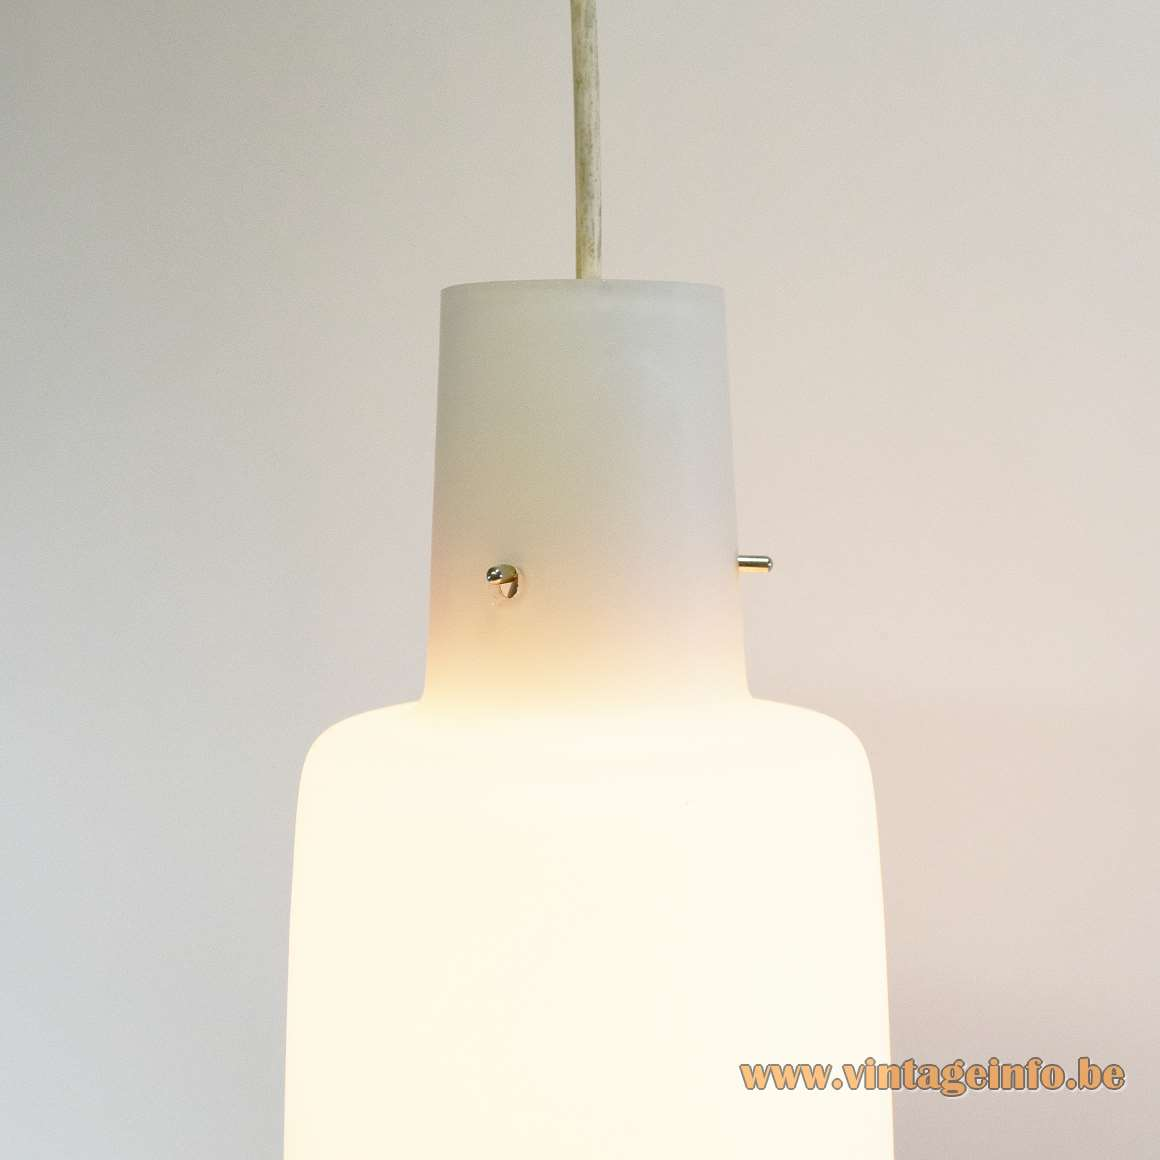 1950s white opal mat/frosted glass pendant lamp bell shape vintage Mid-Century Modern MCM 1960s